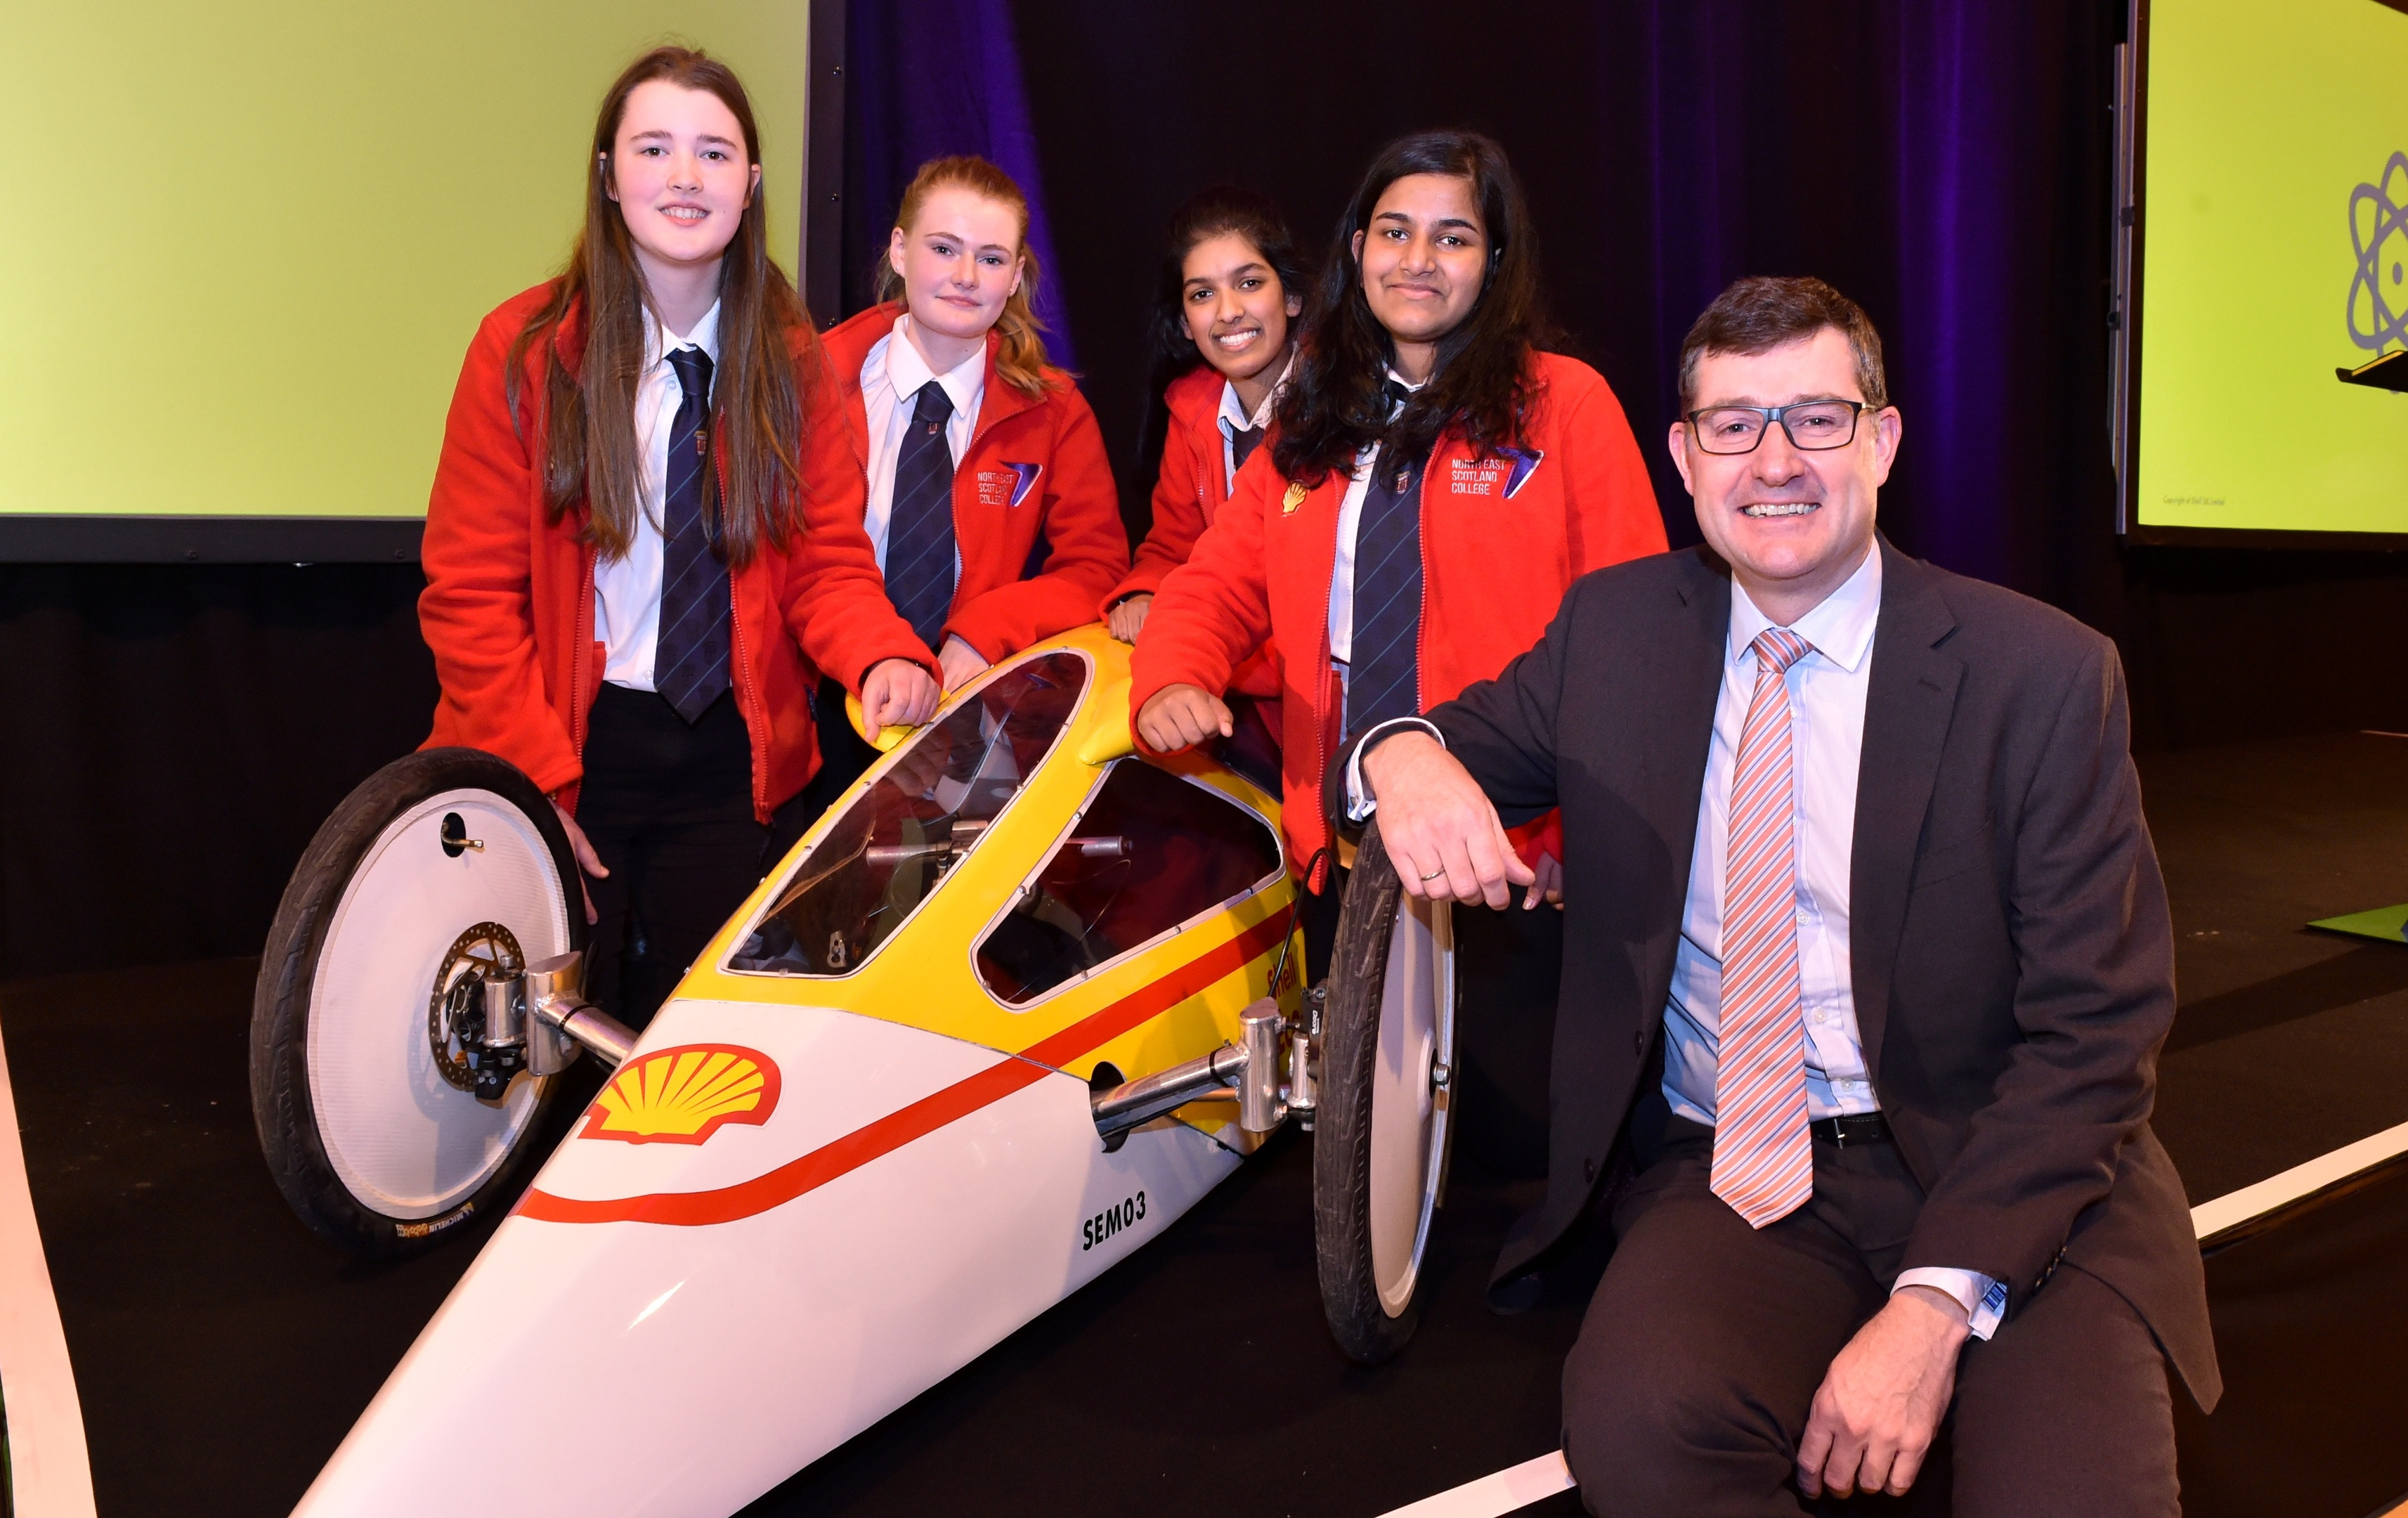 Shell looks to address gender imbalance at Aberdeen event